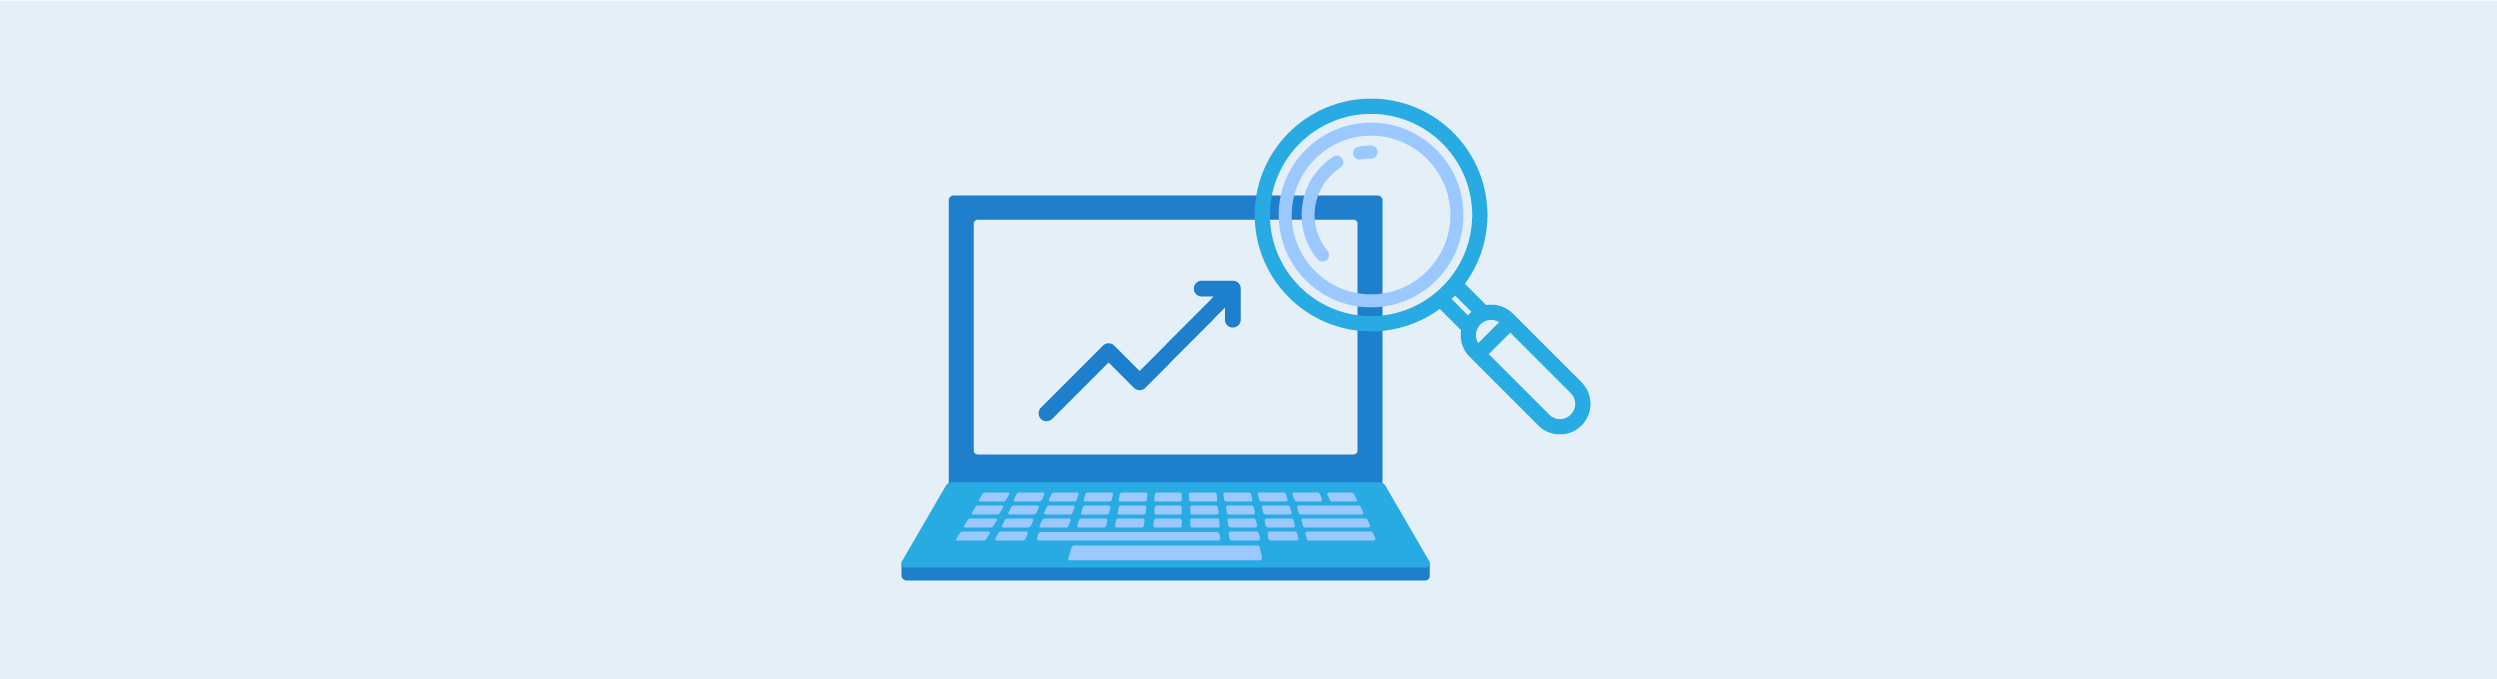 Improve your rankings graphic. Icon of a laptop, with an upwards graph arrow and magnifying glass